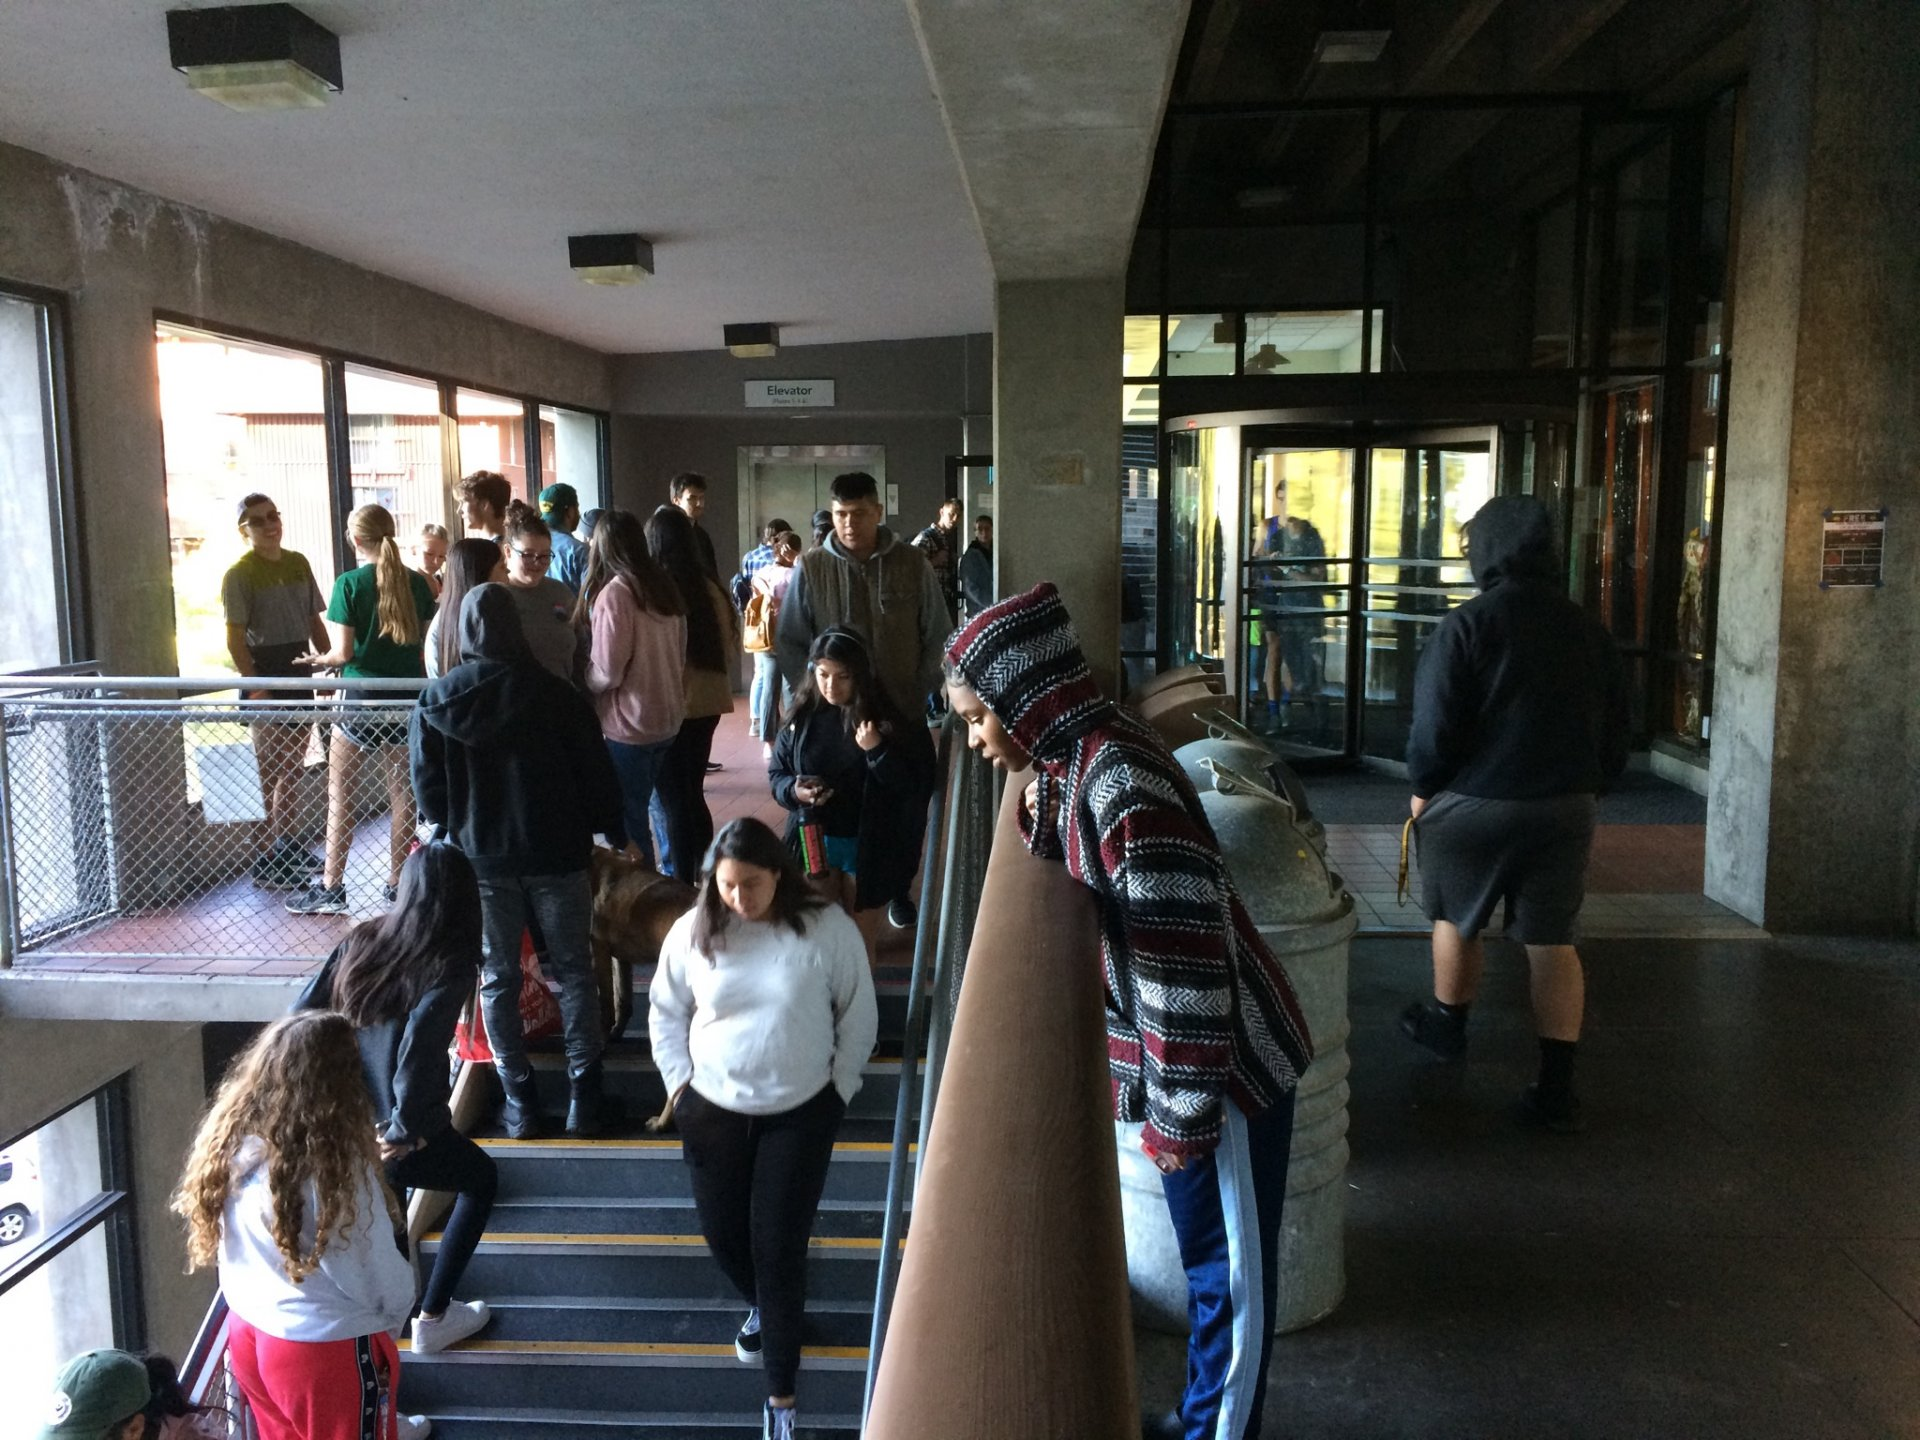 The line to get free food on Oct. 9 outside the J during the California power outages. Food is scarce and students without vehicles rely on campus to meet their needs. | Photo by James Wilde